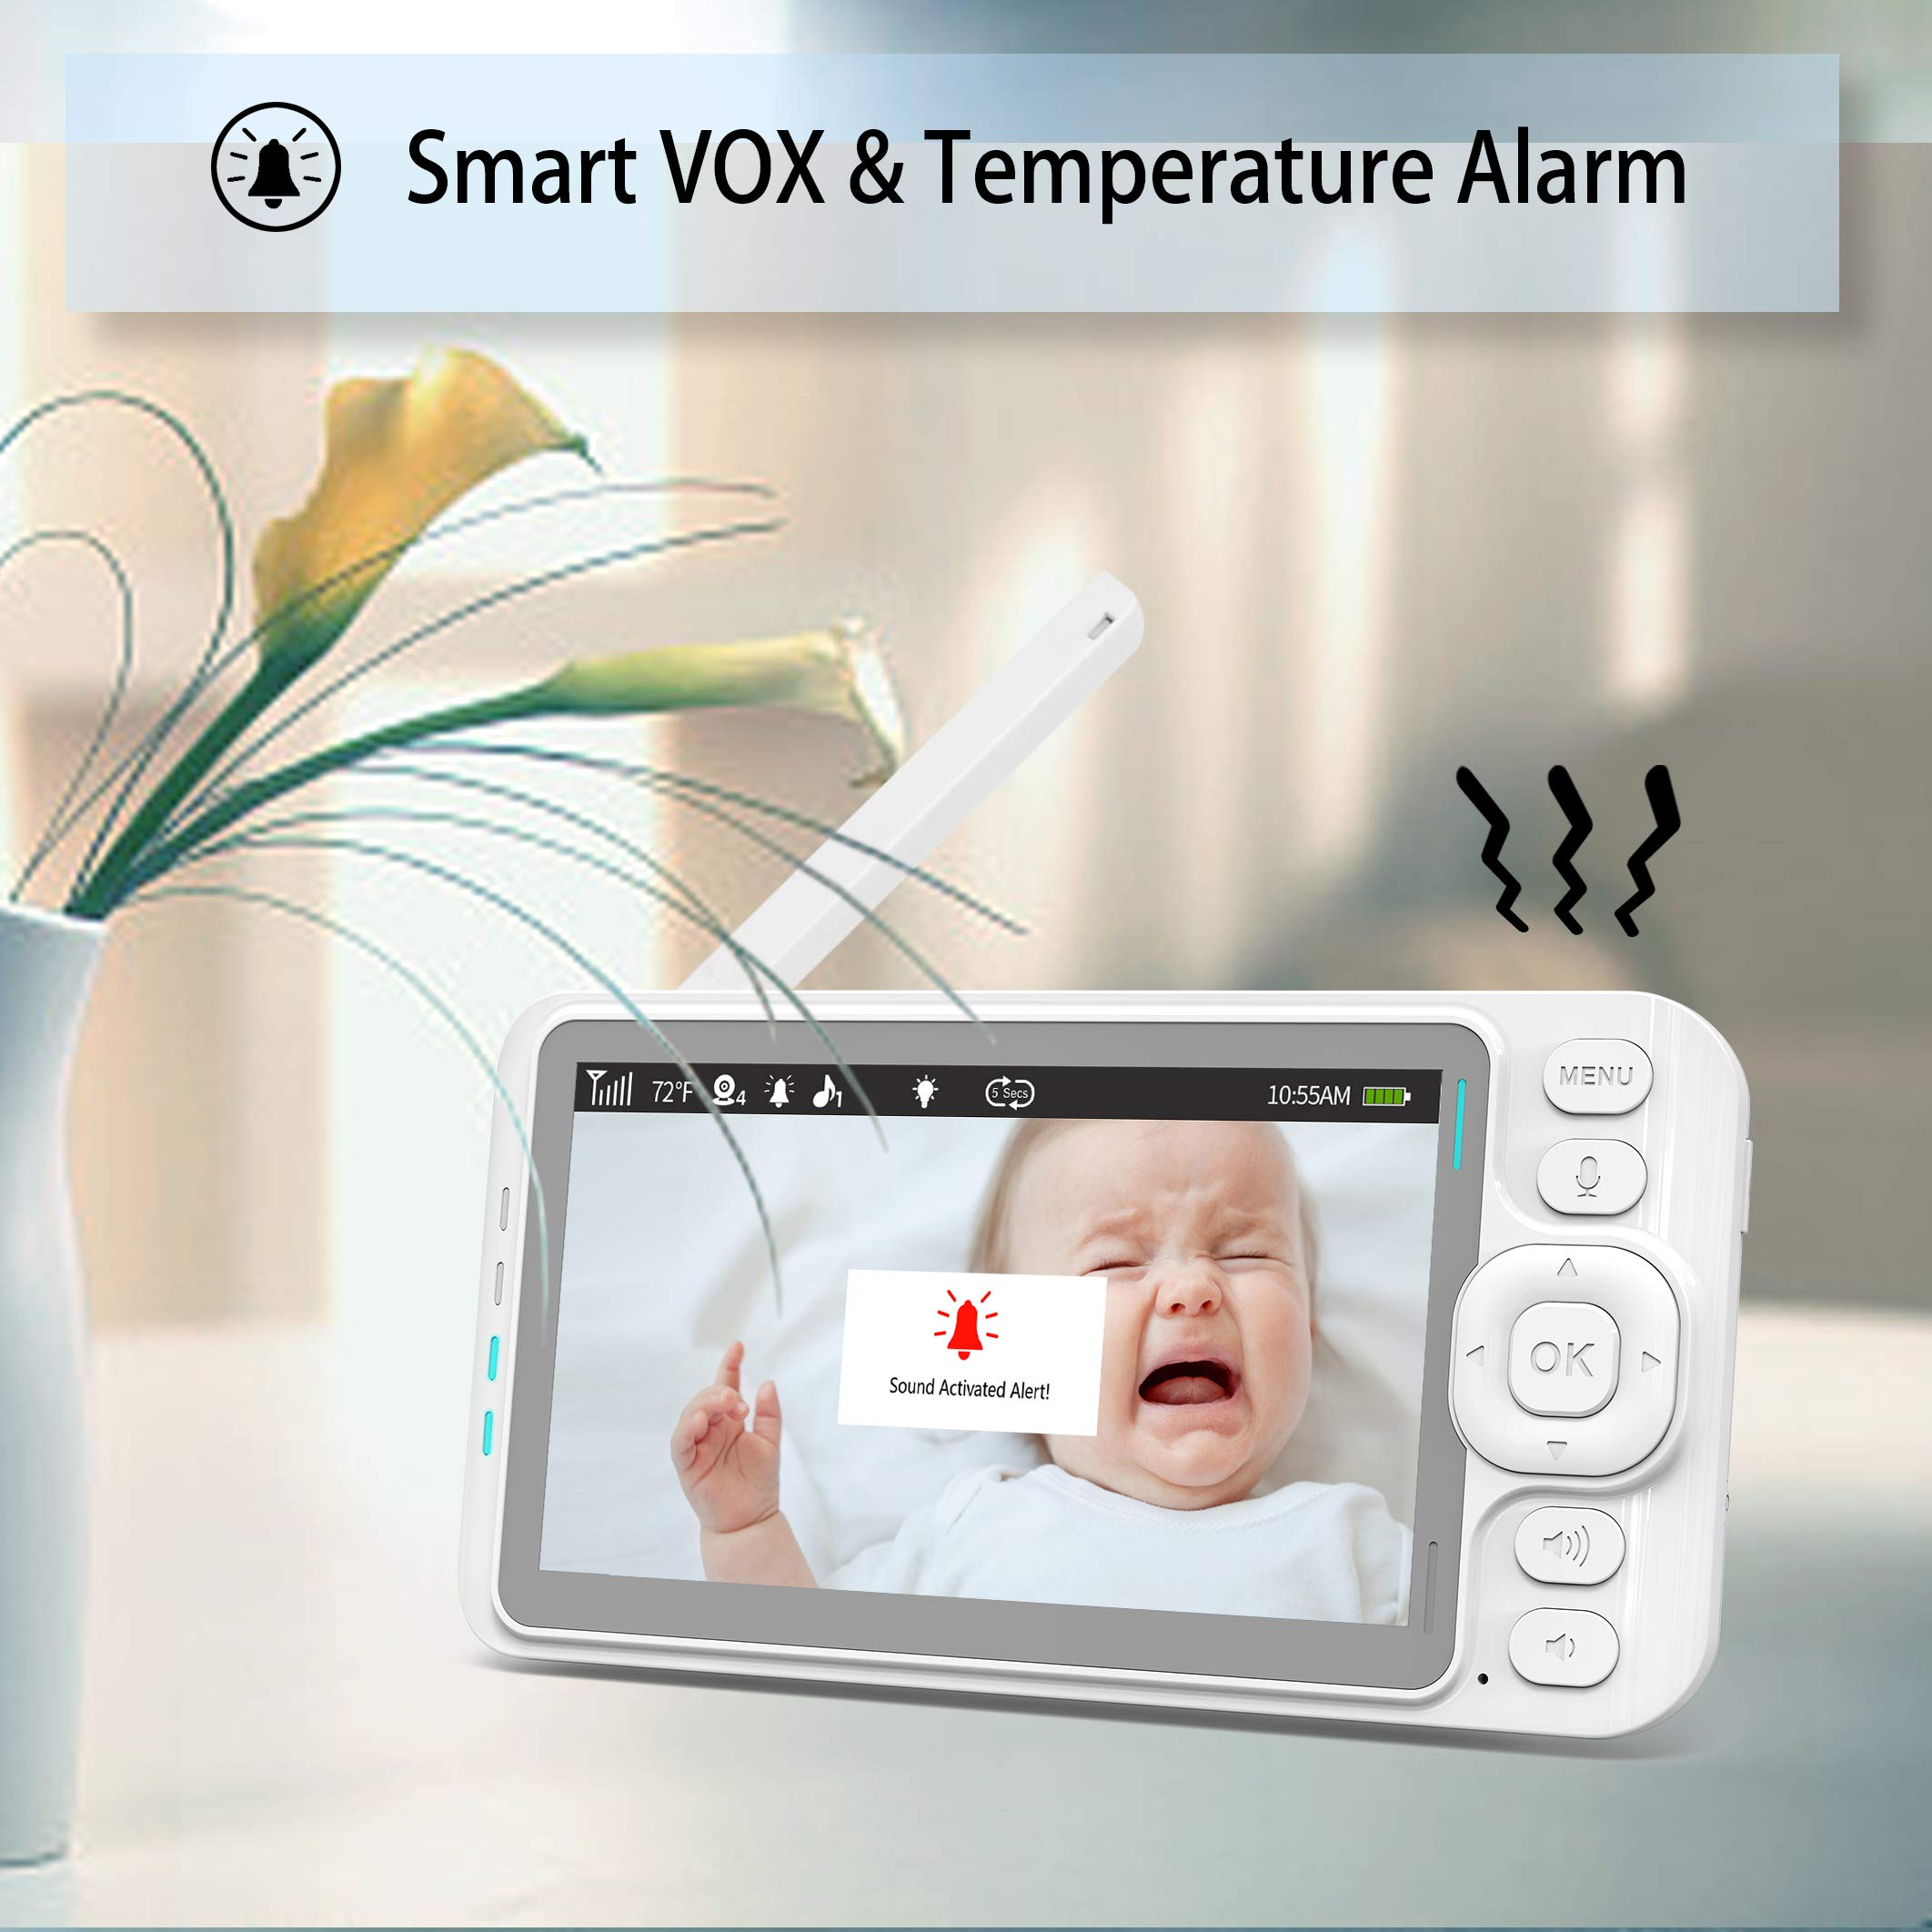 Samxic Video Baby Monitor with 720P Camera, 5 Inches Display, Crying & Temperature Alert, Two-Way Talk, No Glow Night Vision, Remote Pan & Tilt & Zoom, High Privacy Baby Monitor System by Samxic (Image #4)